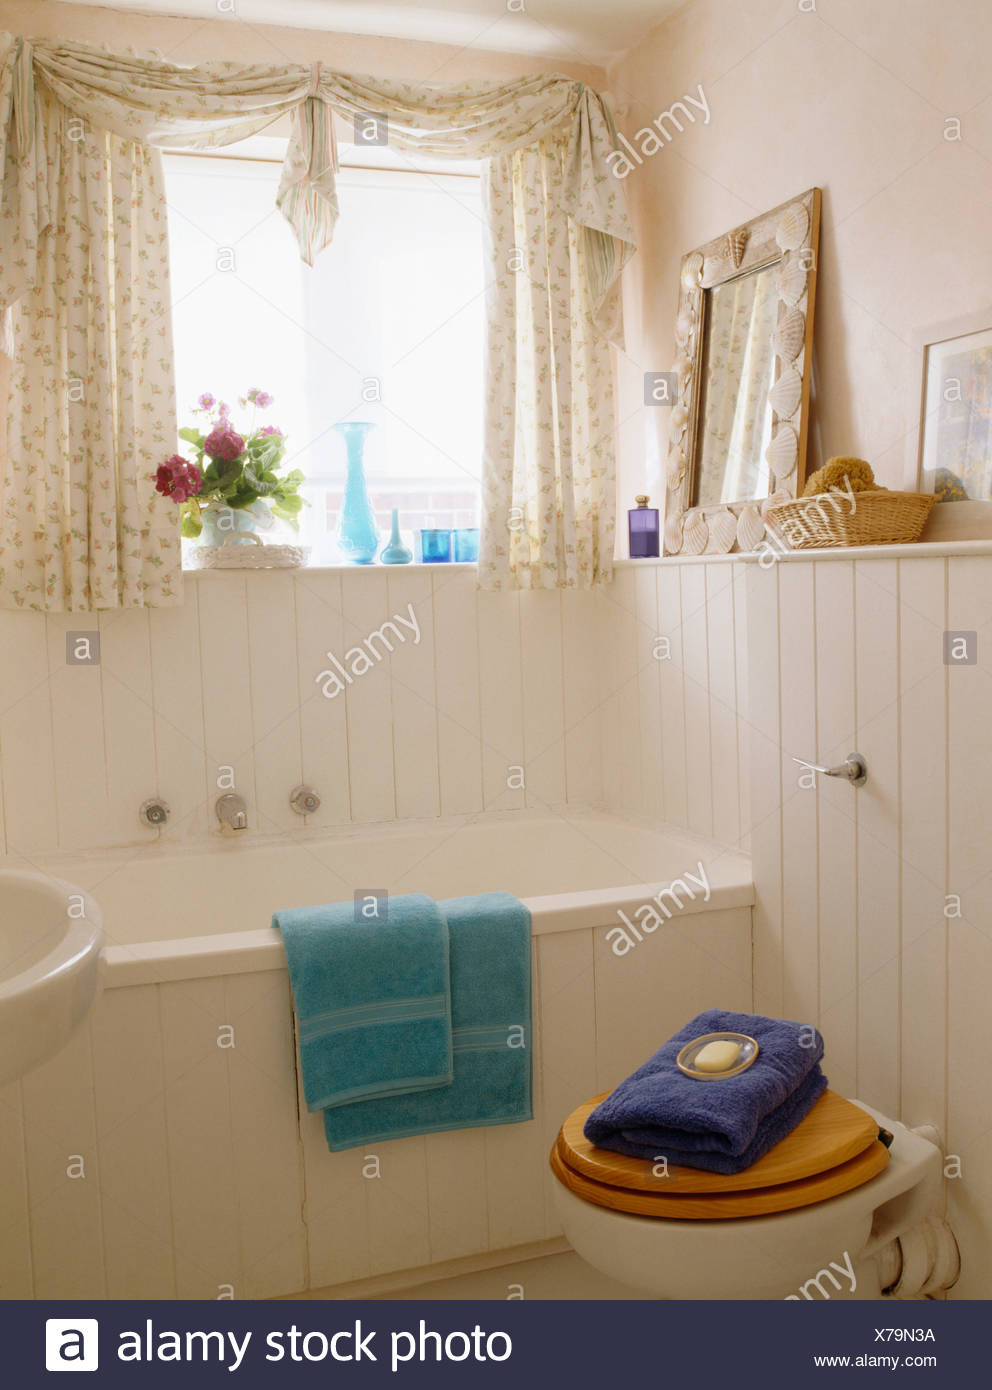 Pale Pink Bathroom With White Tongue Groove Panelling And Pink Floral Curtains On Window Above Bath Stock Photo Alamy